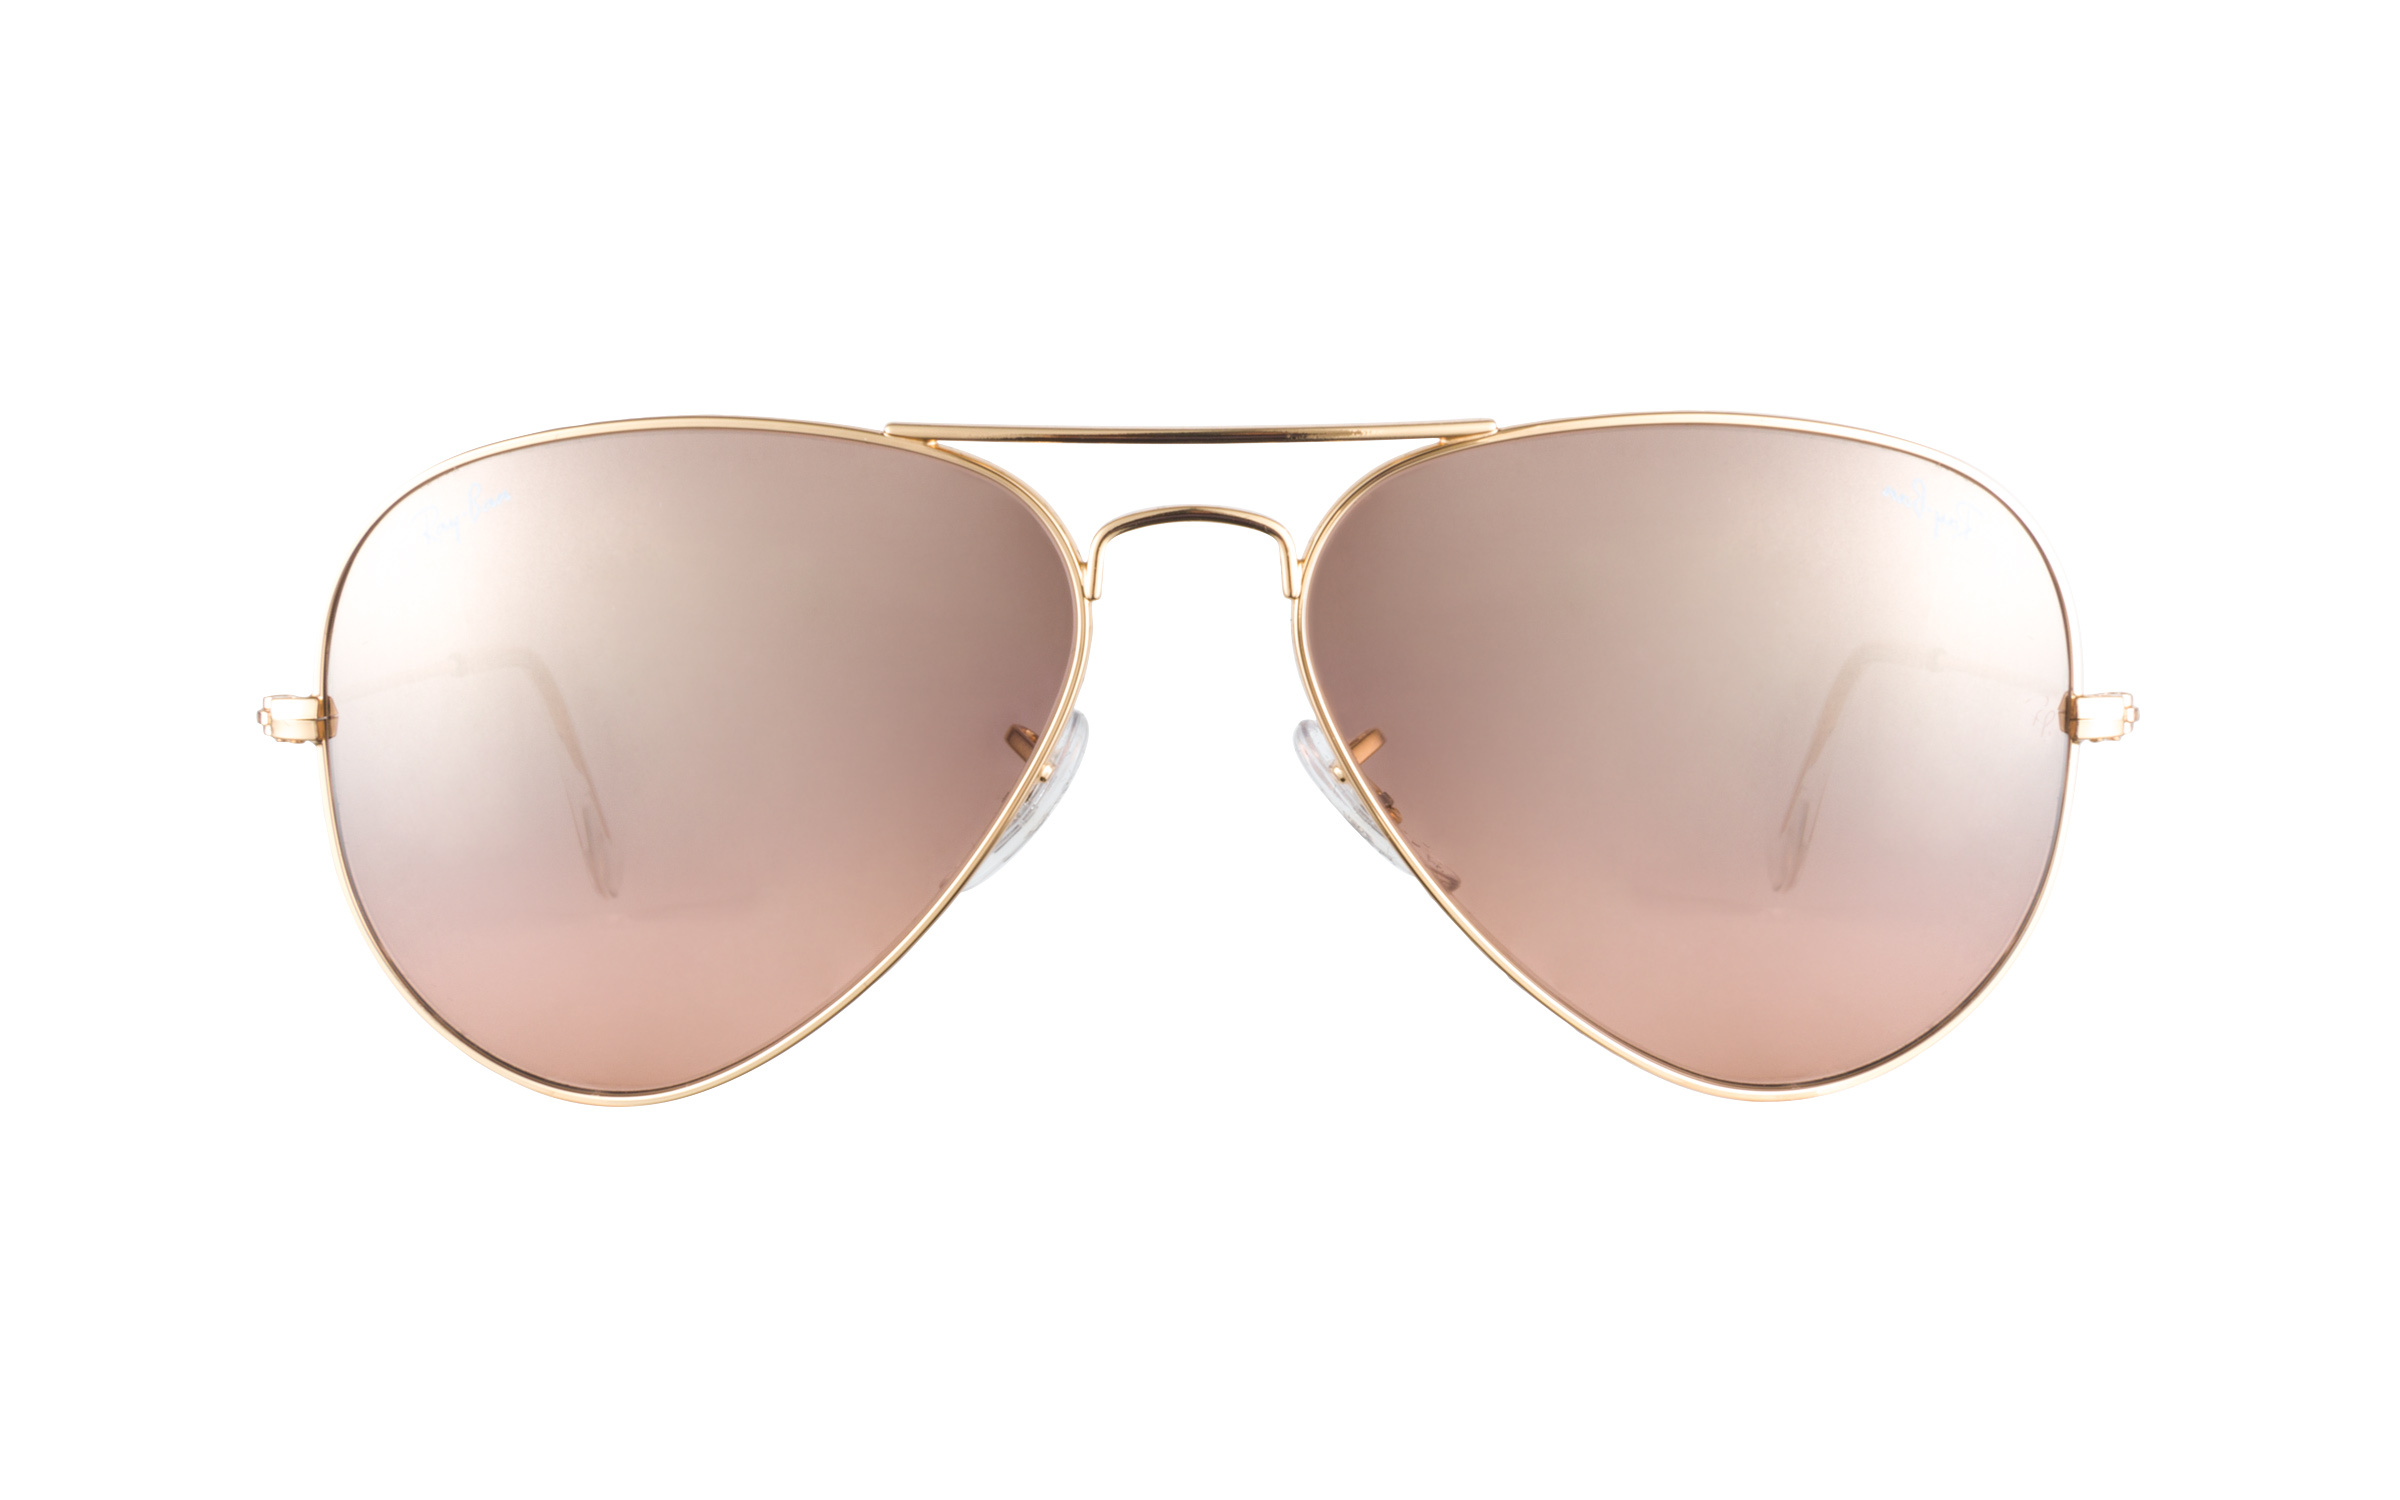 ray ban rb3025 sunglasses  product image of ray ban rb3025 58rx gold